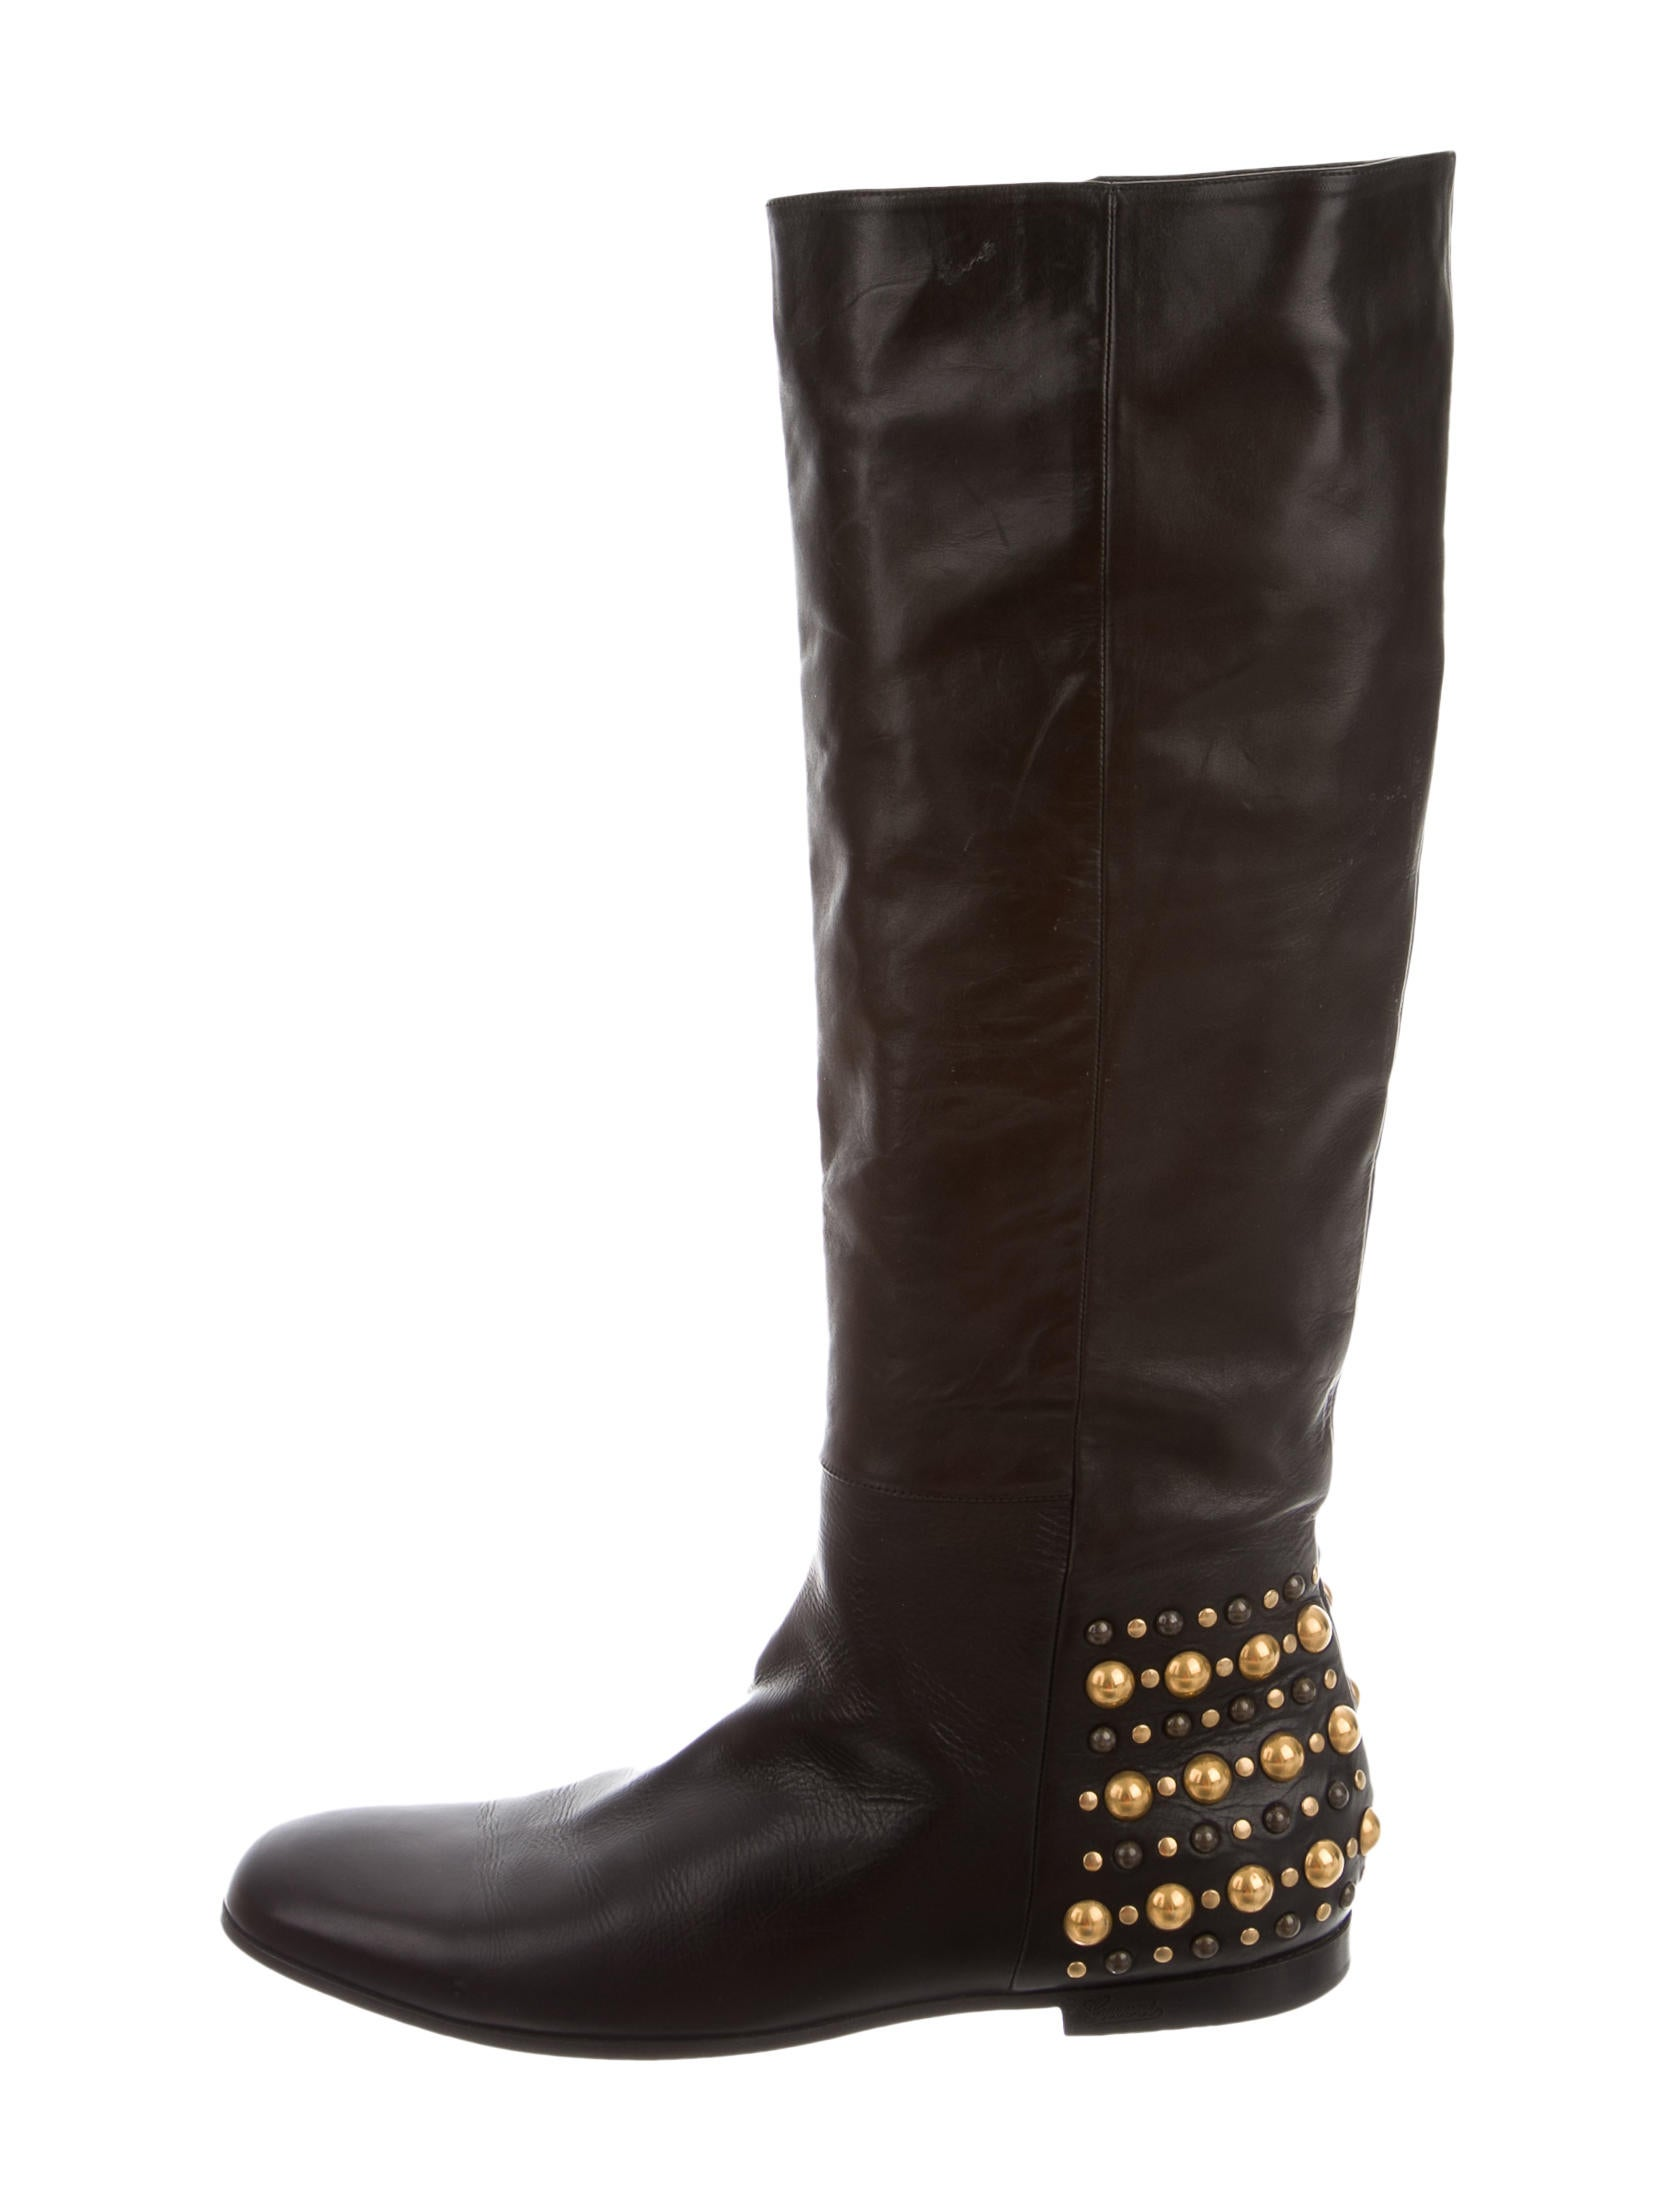 gucci studded leather boots shoes guc105316 the realreal